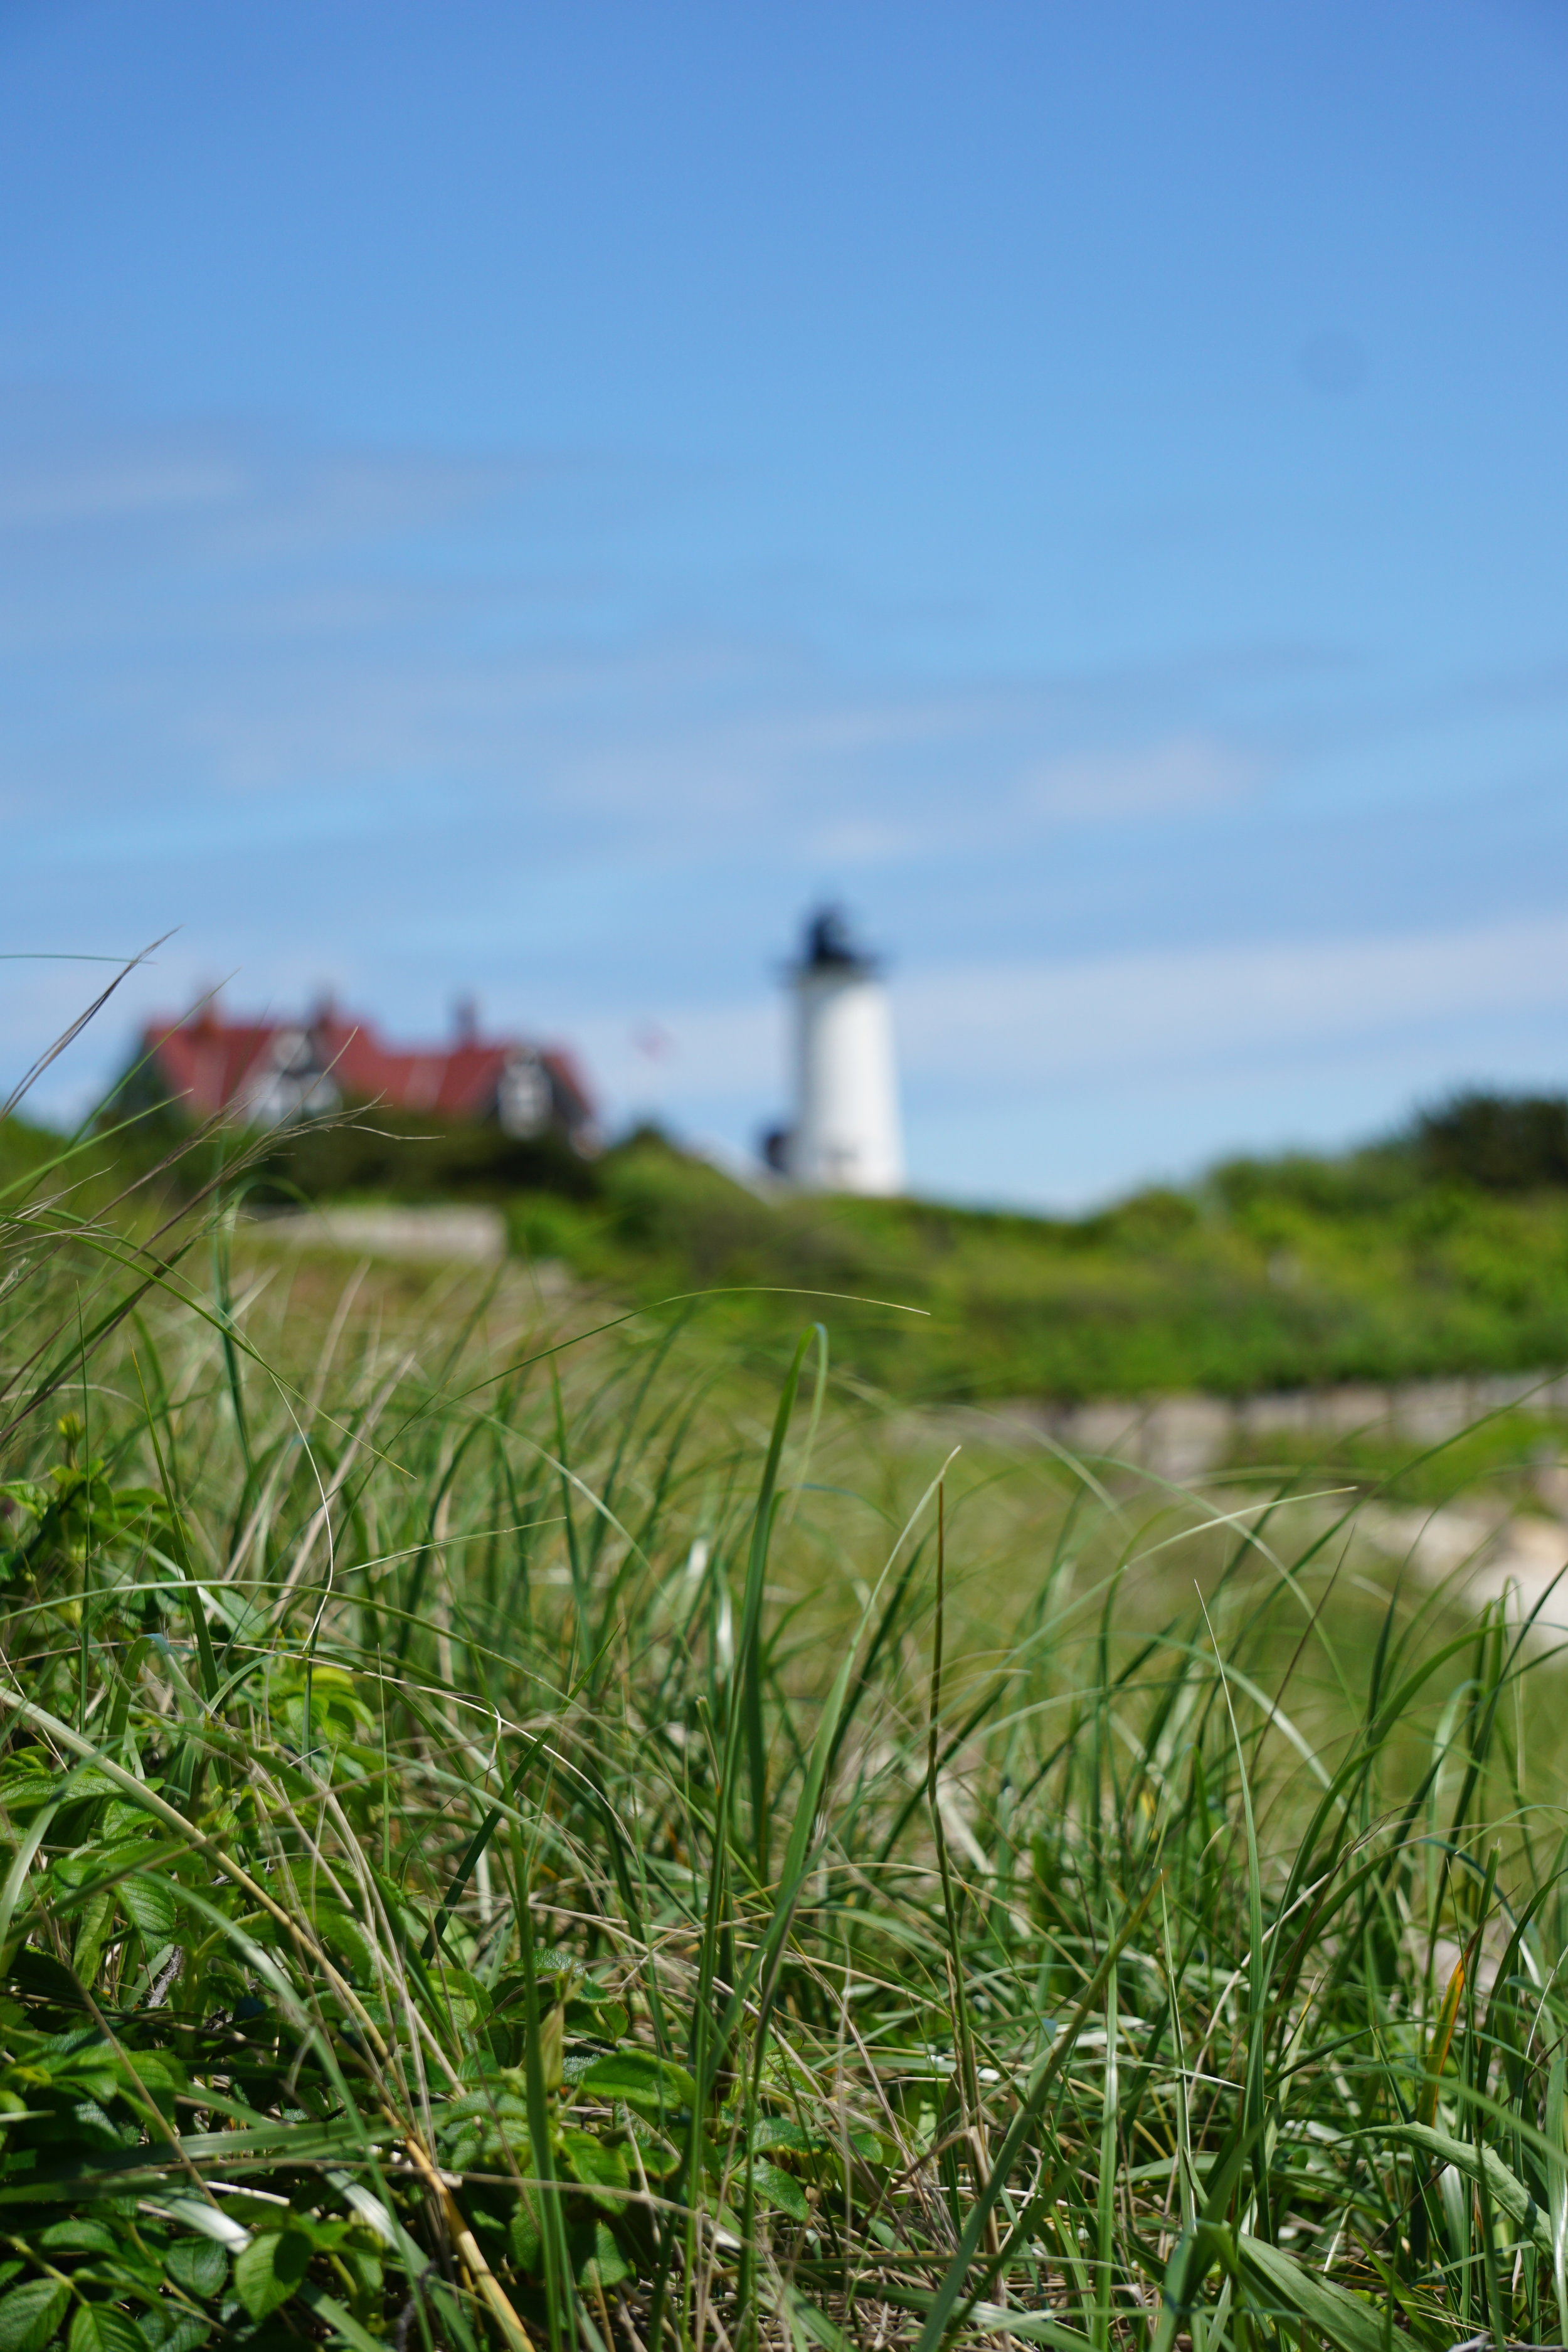 Massachusetts  - More articles and information about homes and destinations in Massachusetts